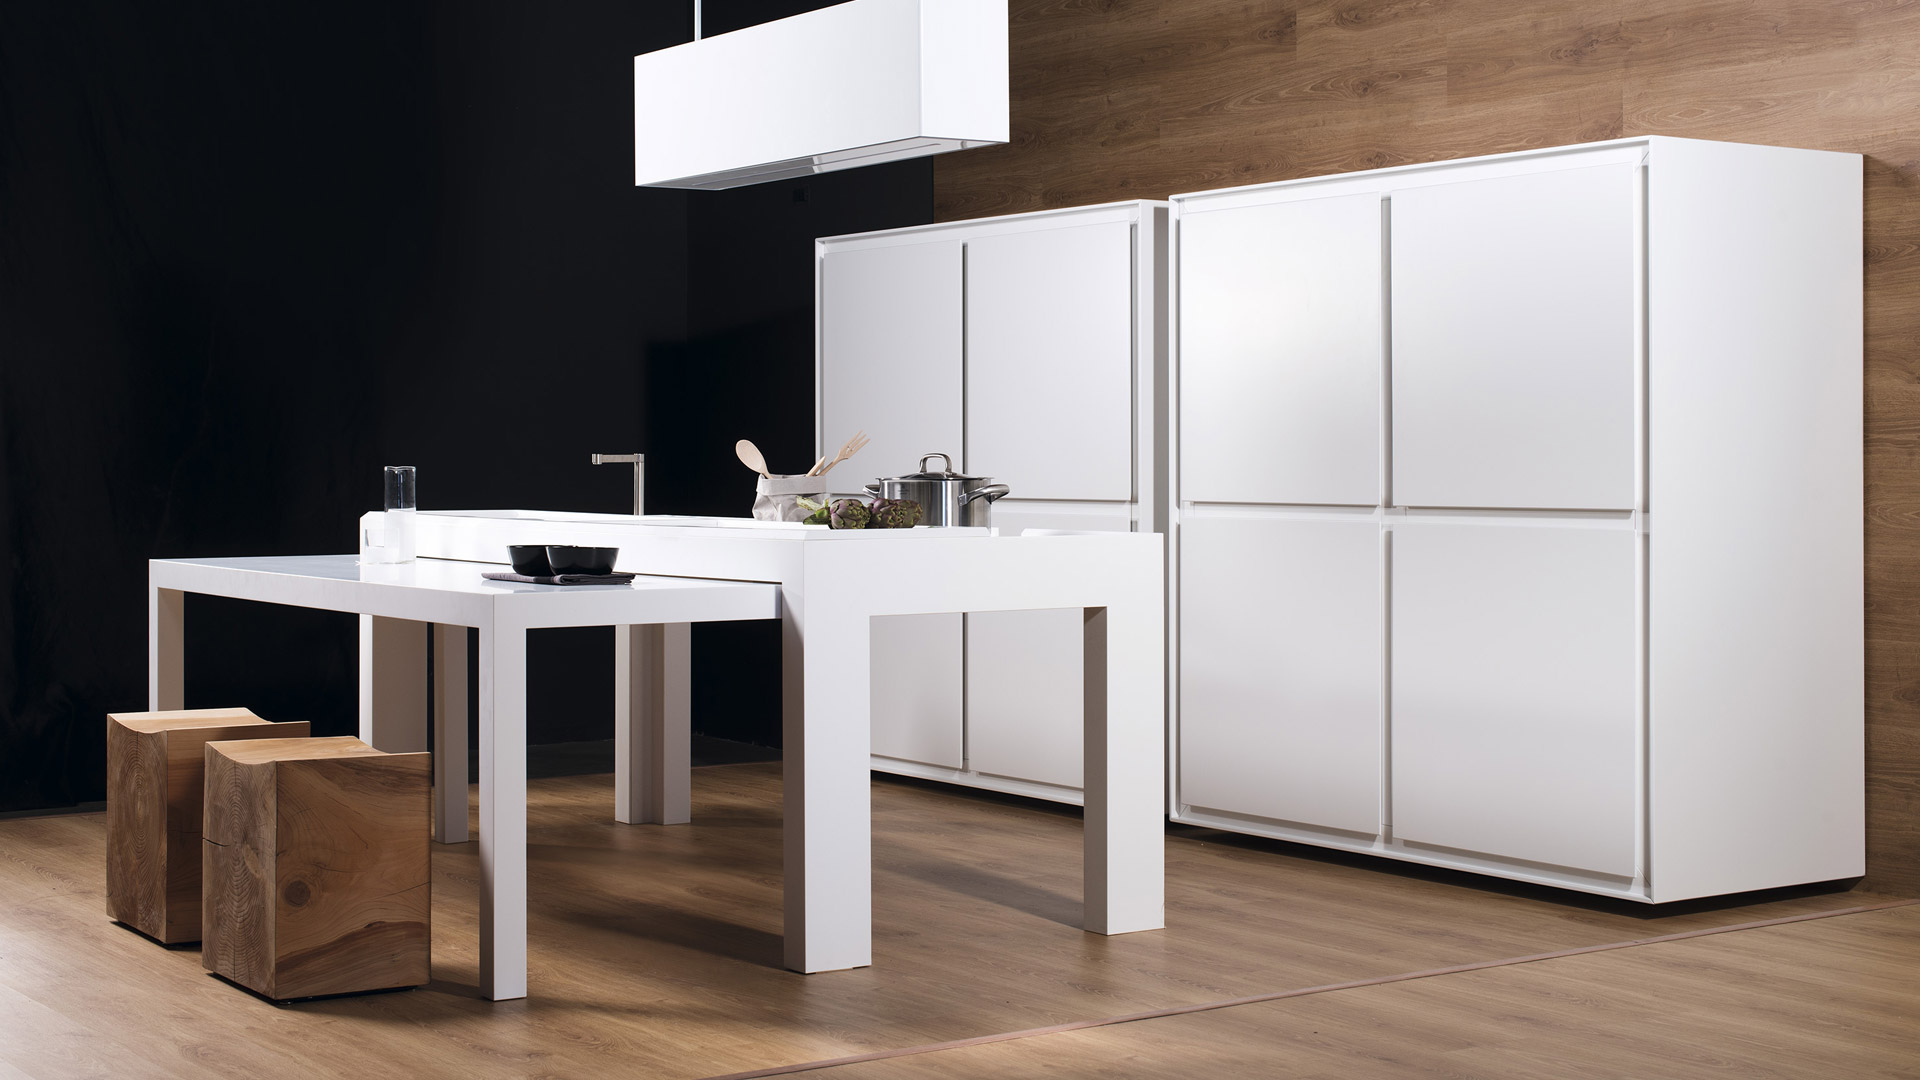 OFF KITCHEN: cucina a scomparsa freestanding per ufficio - Inspired-Lab_OFF